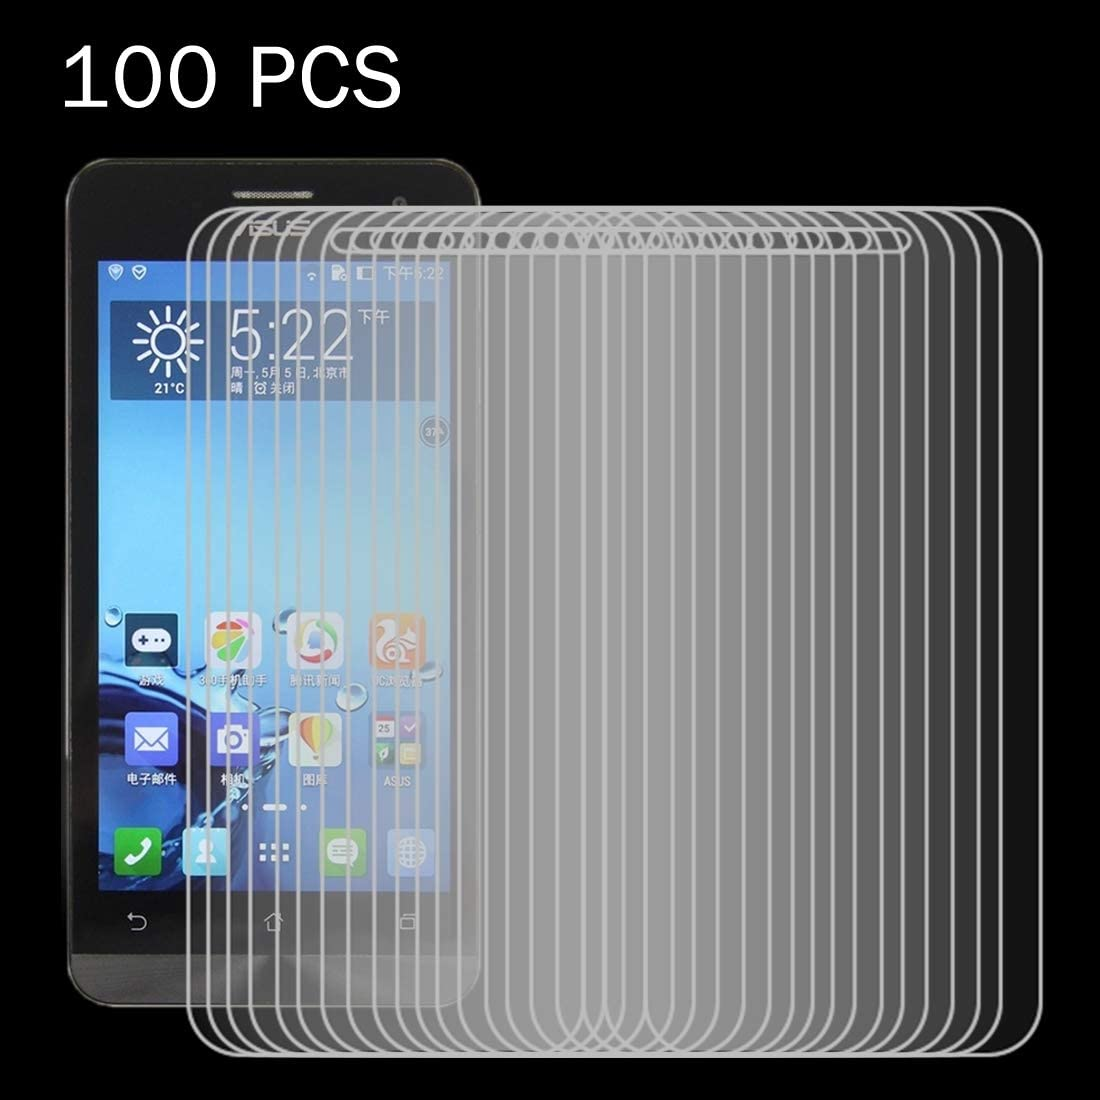 JIN TEMPEREDGLASSFILM 100 PCS for ASUS ZenFone 5 0.26mm 9H Surface Hardness 2.5D Explosion-Proof Tempered Glass Film